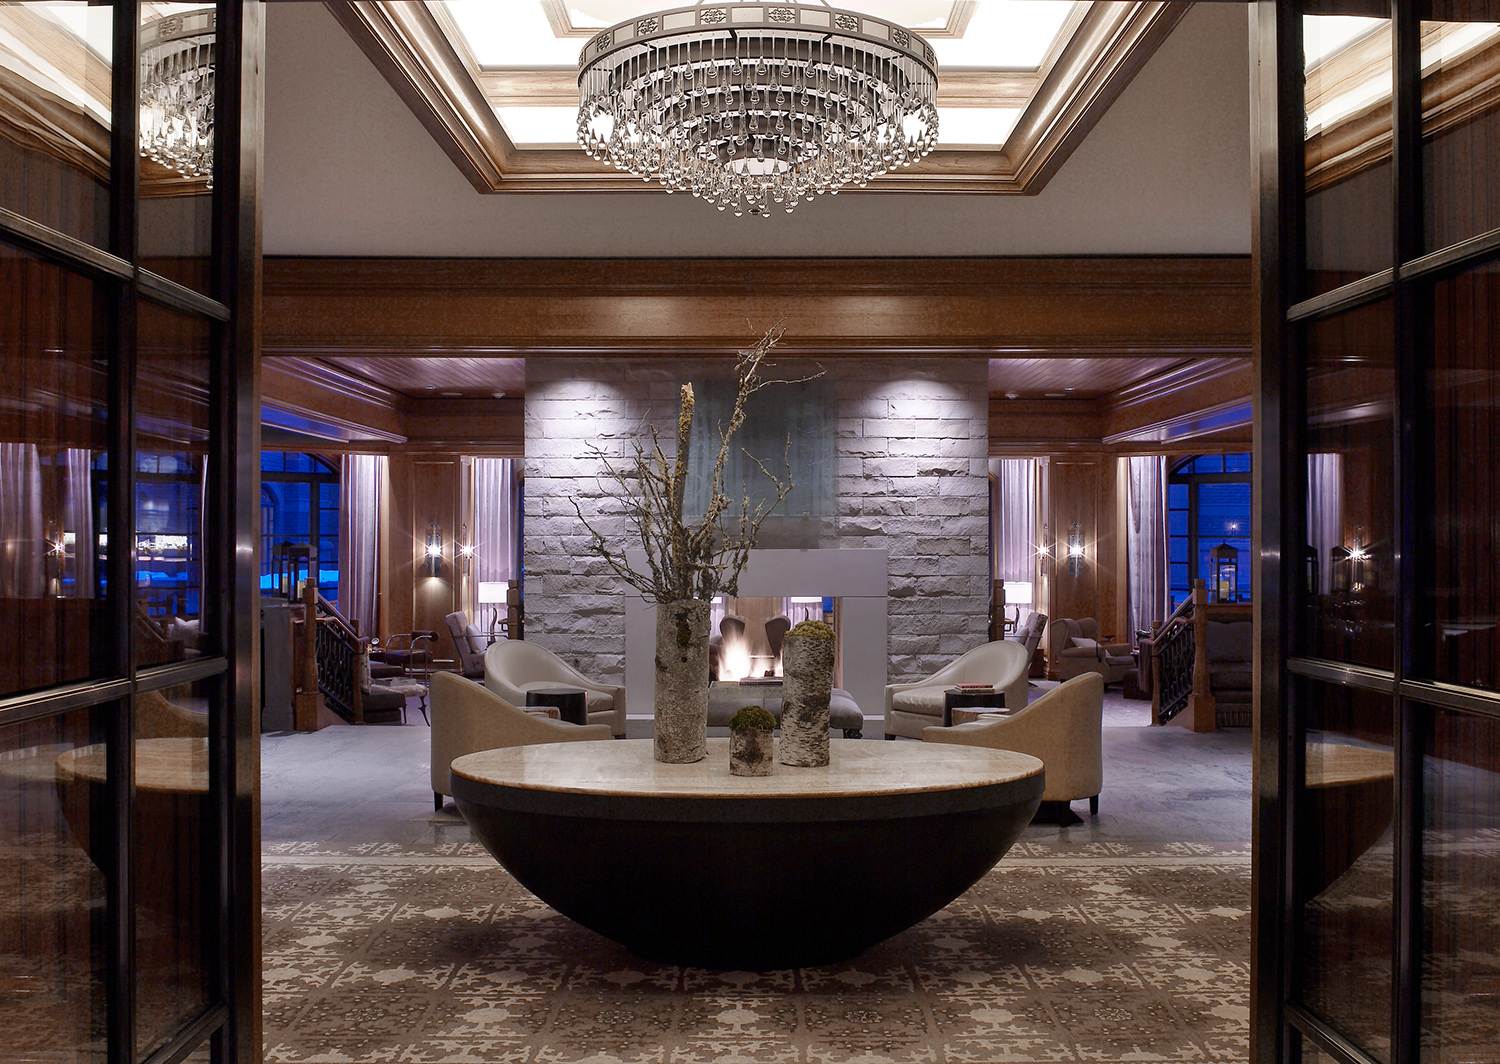 St  Regis Aspen Resort   Luxury Architecture   Rowland   Broughton St  Regis Aspen Resort